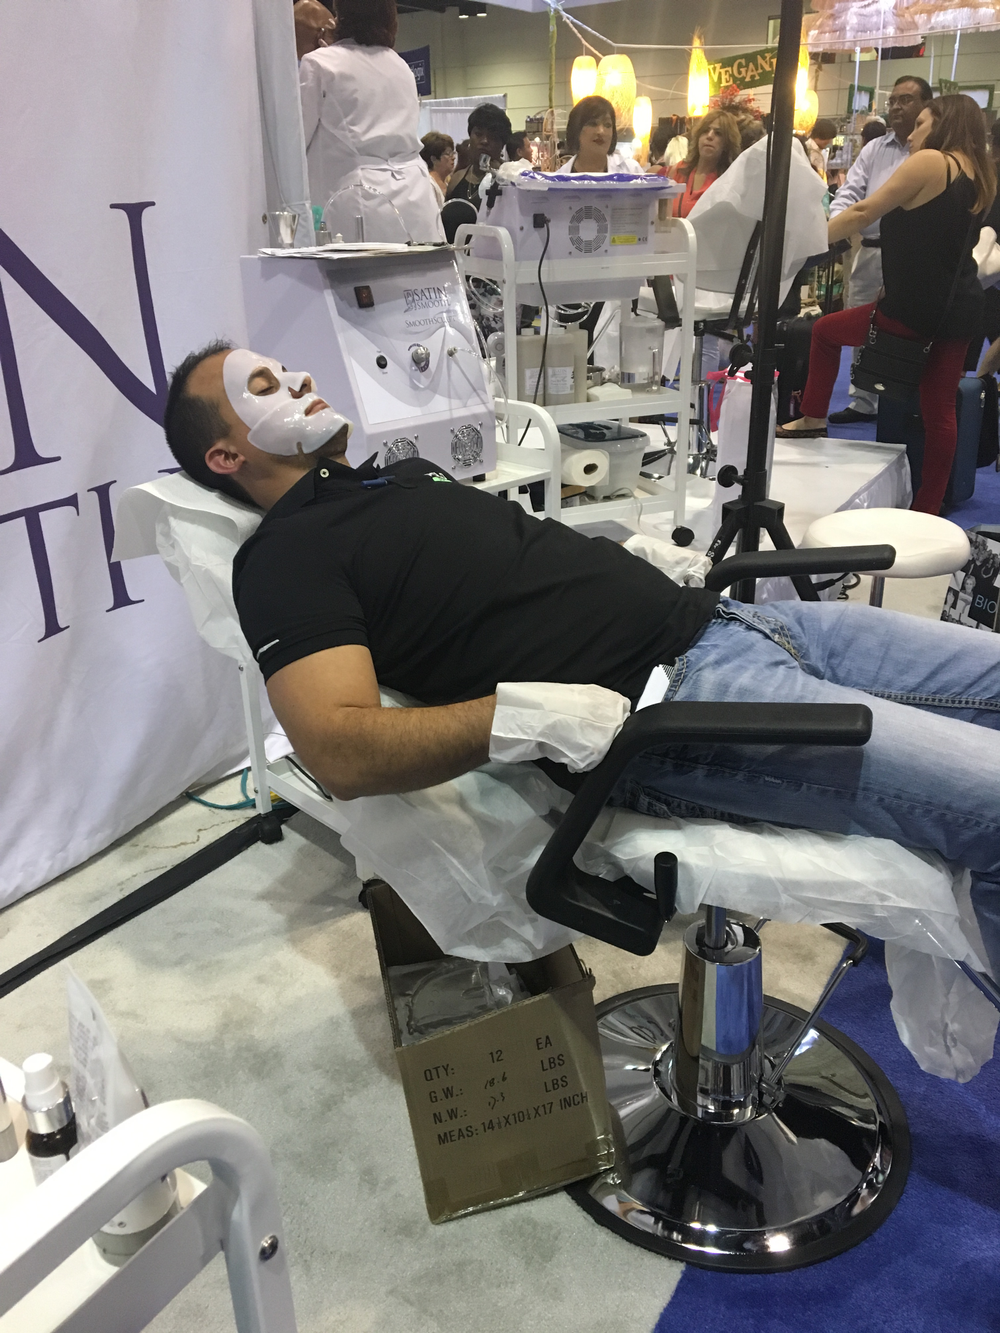 A show attendee relaxes with Satin Smooth collagen face and hand masks at the brand's booth, proving skincare isn't just for female clients.